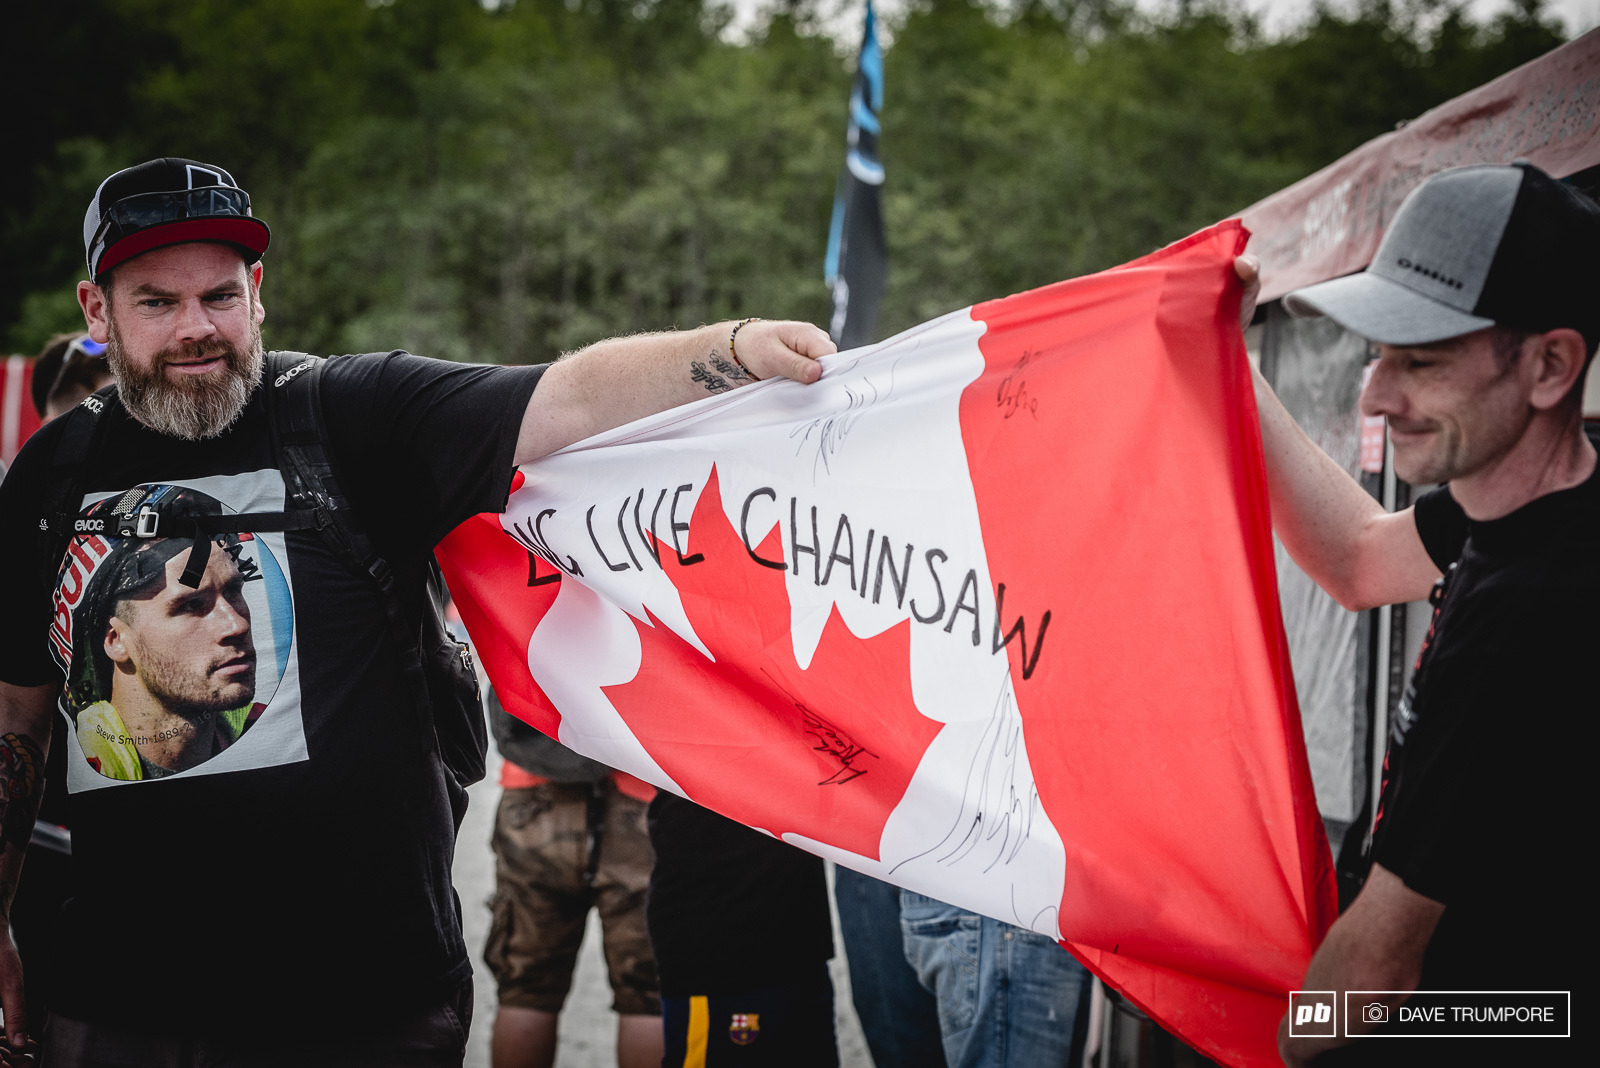 These guys walked the pits after qualifiers adding every autograph they could to this very special Canadian flag.